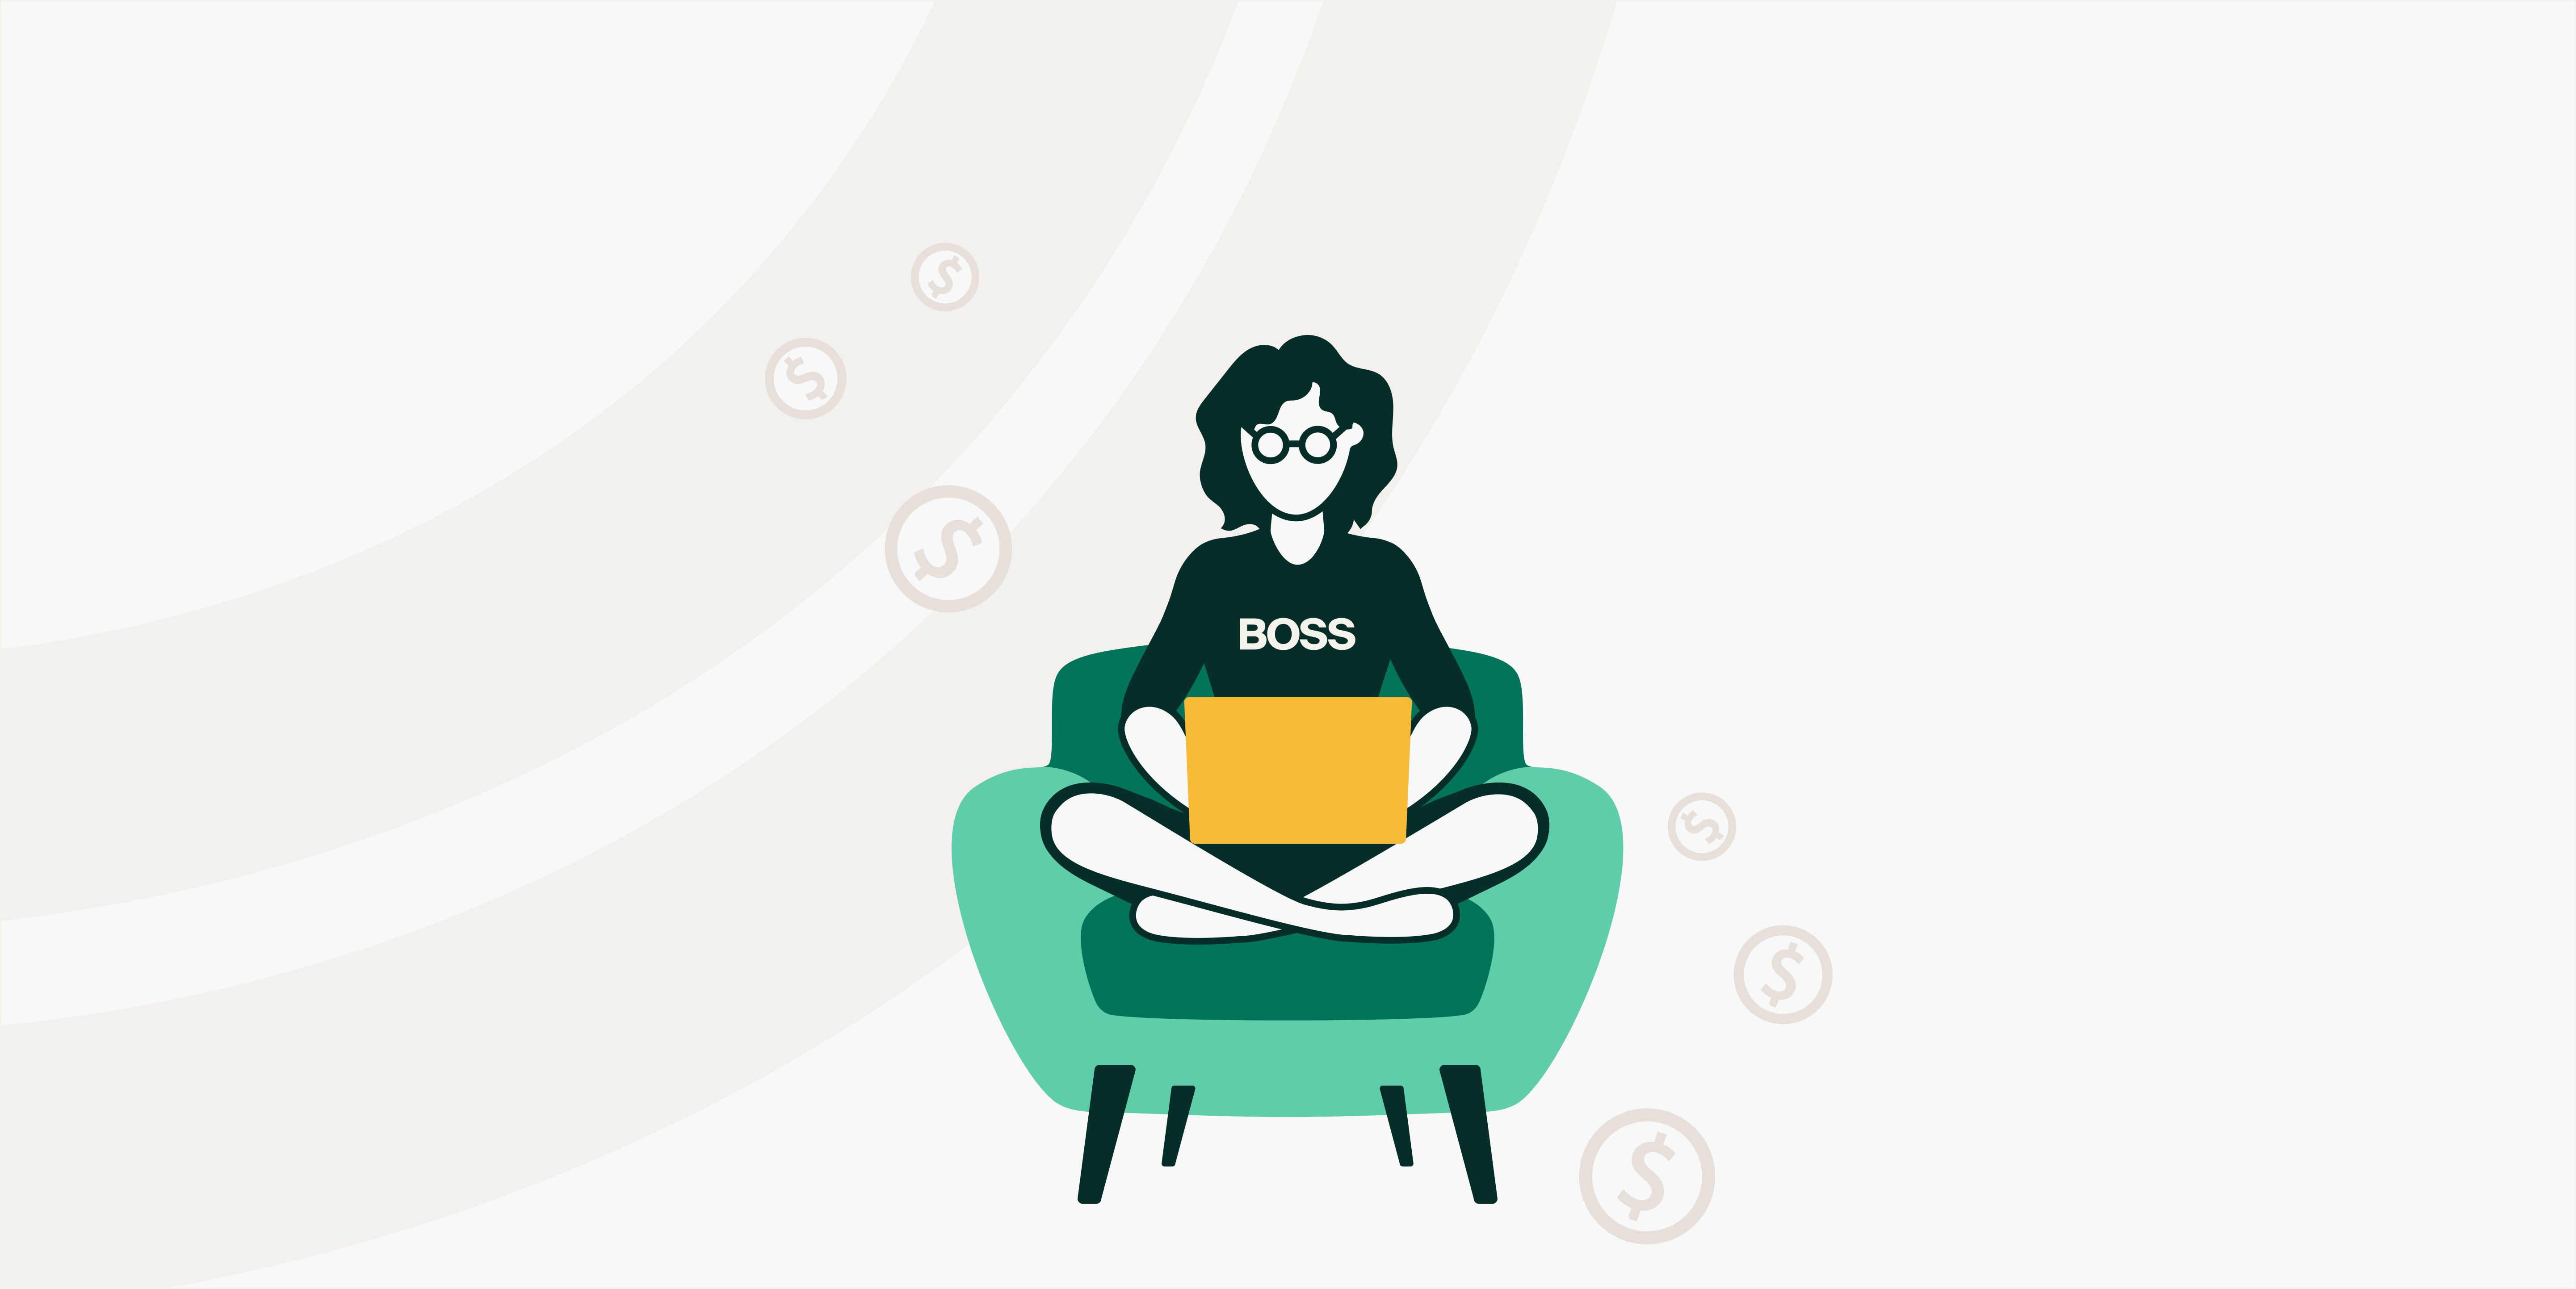 """Decorative, illustration of a person wearing a shirt labeled """"Boss"""" sitting cross-legged on a chair with a laptop in their lap 